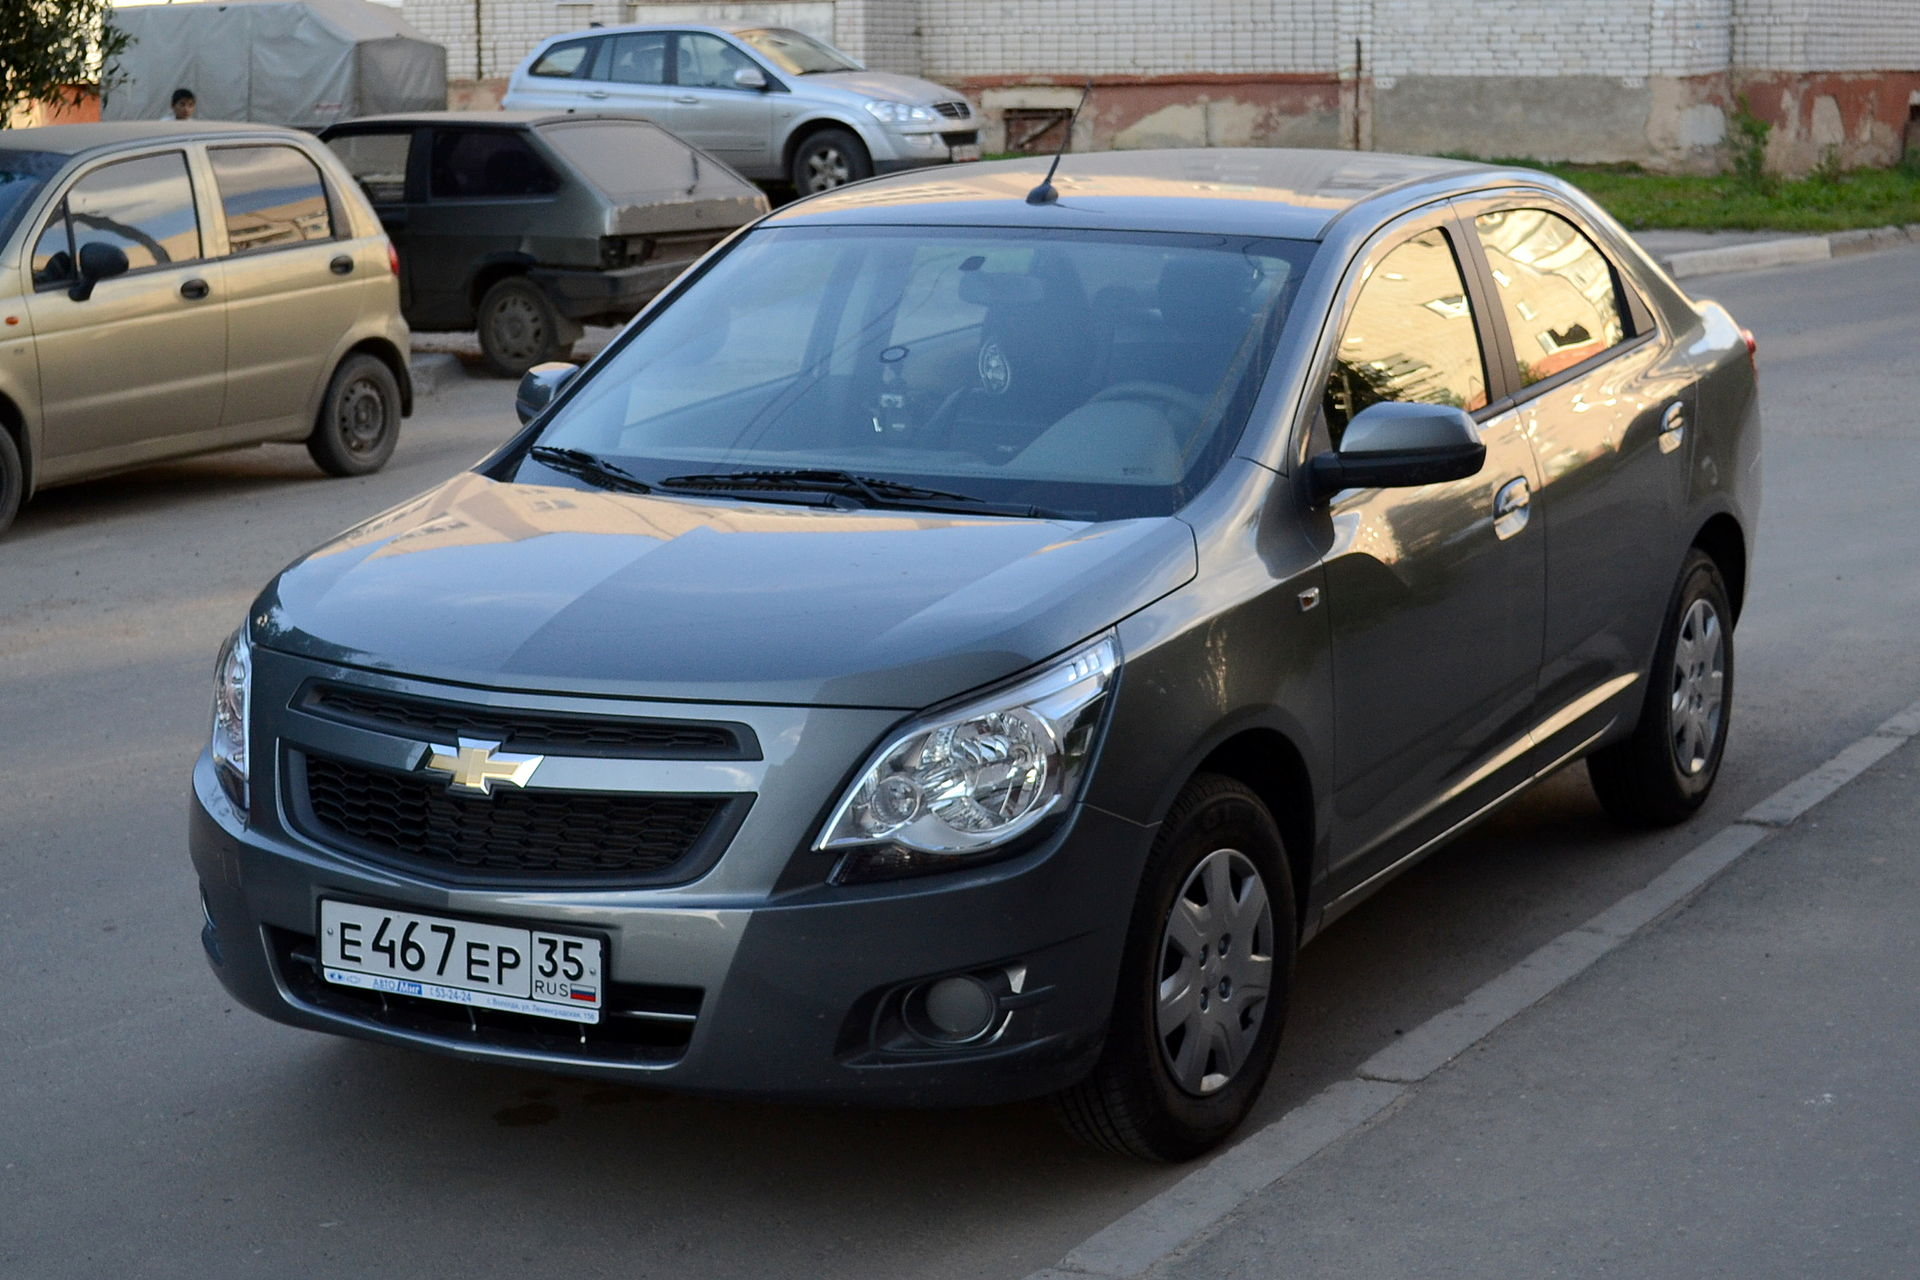 1920px-Chevrolet_Cobalt_2013_in_Russia Cool Review About 2006 Cobalt Ss Specs with Gorgeous Gallery Cars Review